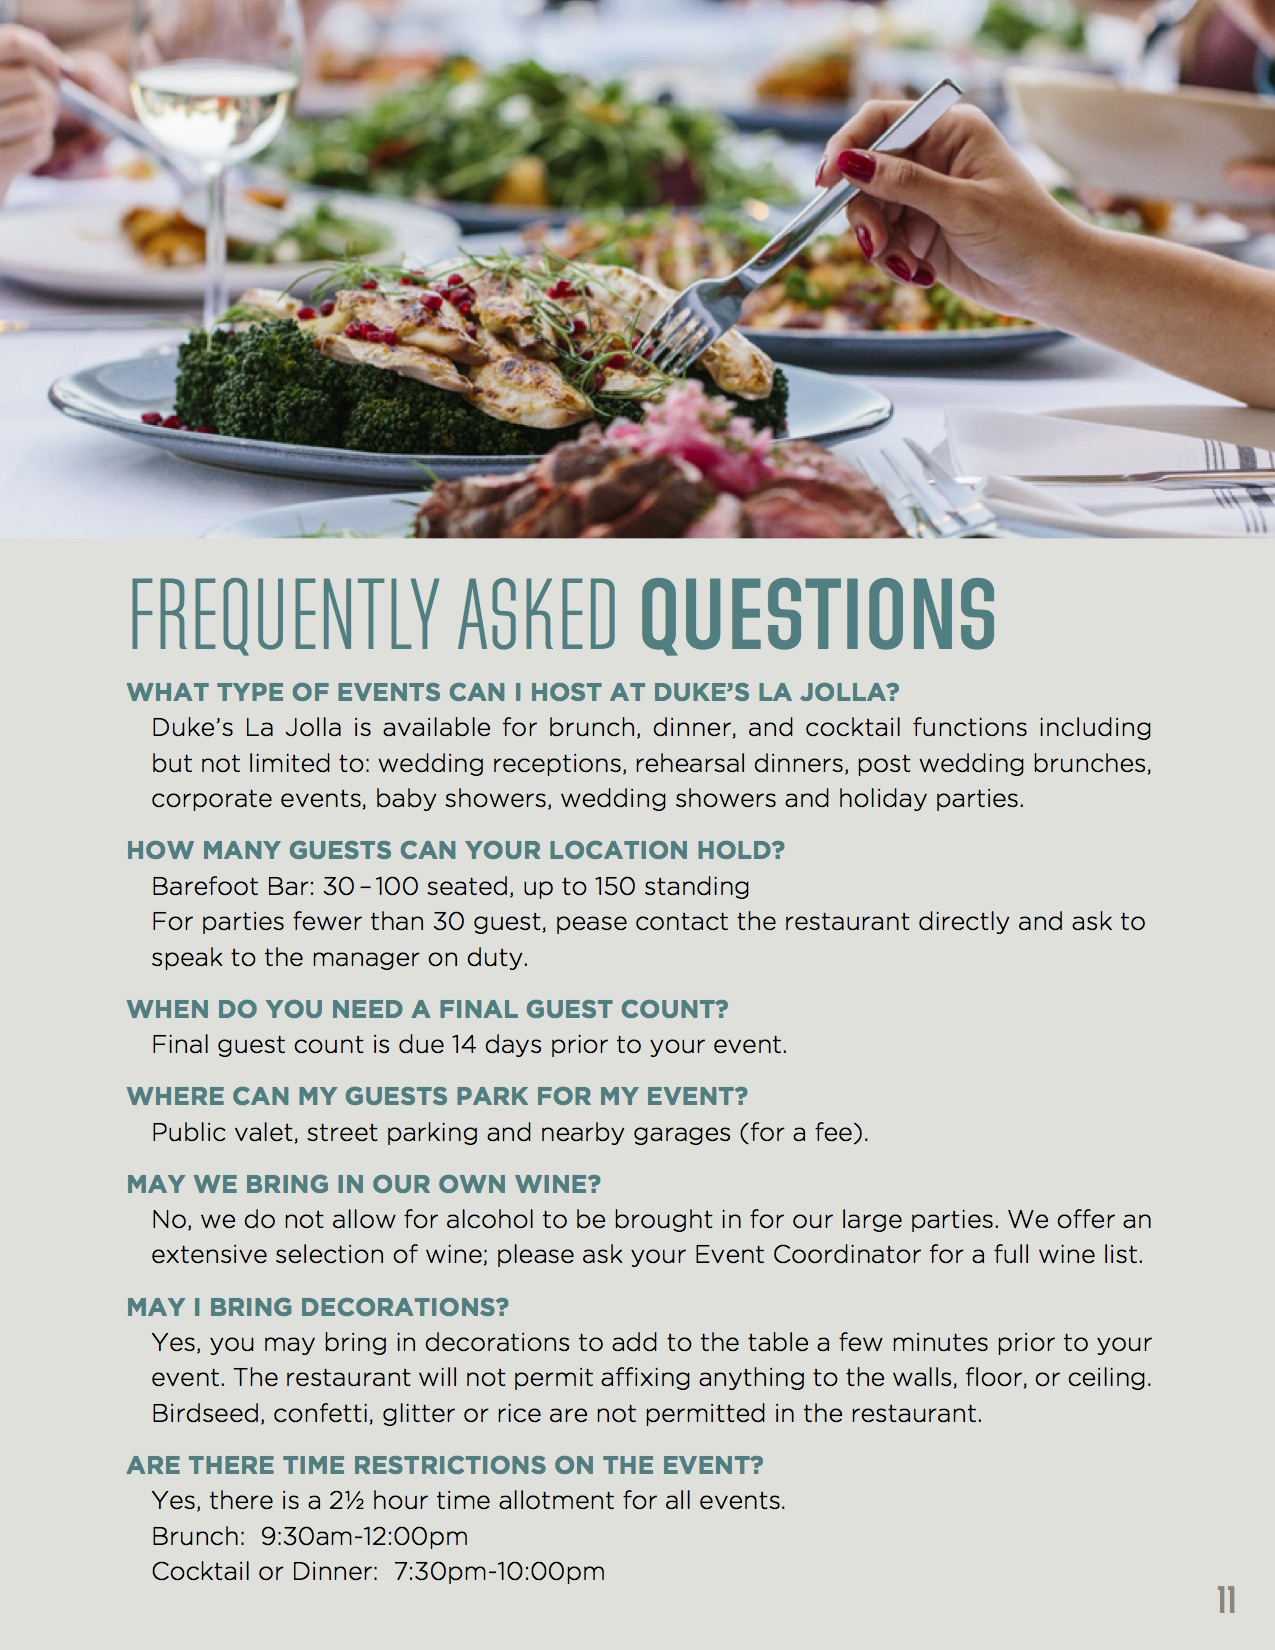 Frequently asked questions with image of woman eating off a plate